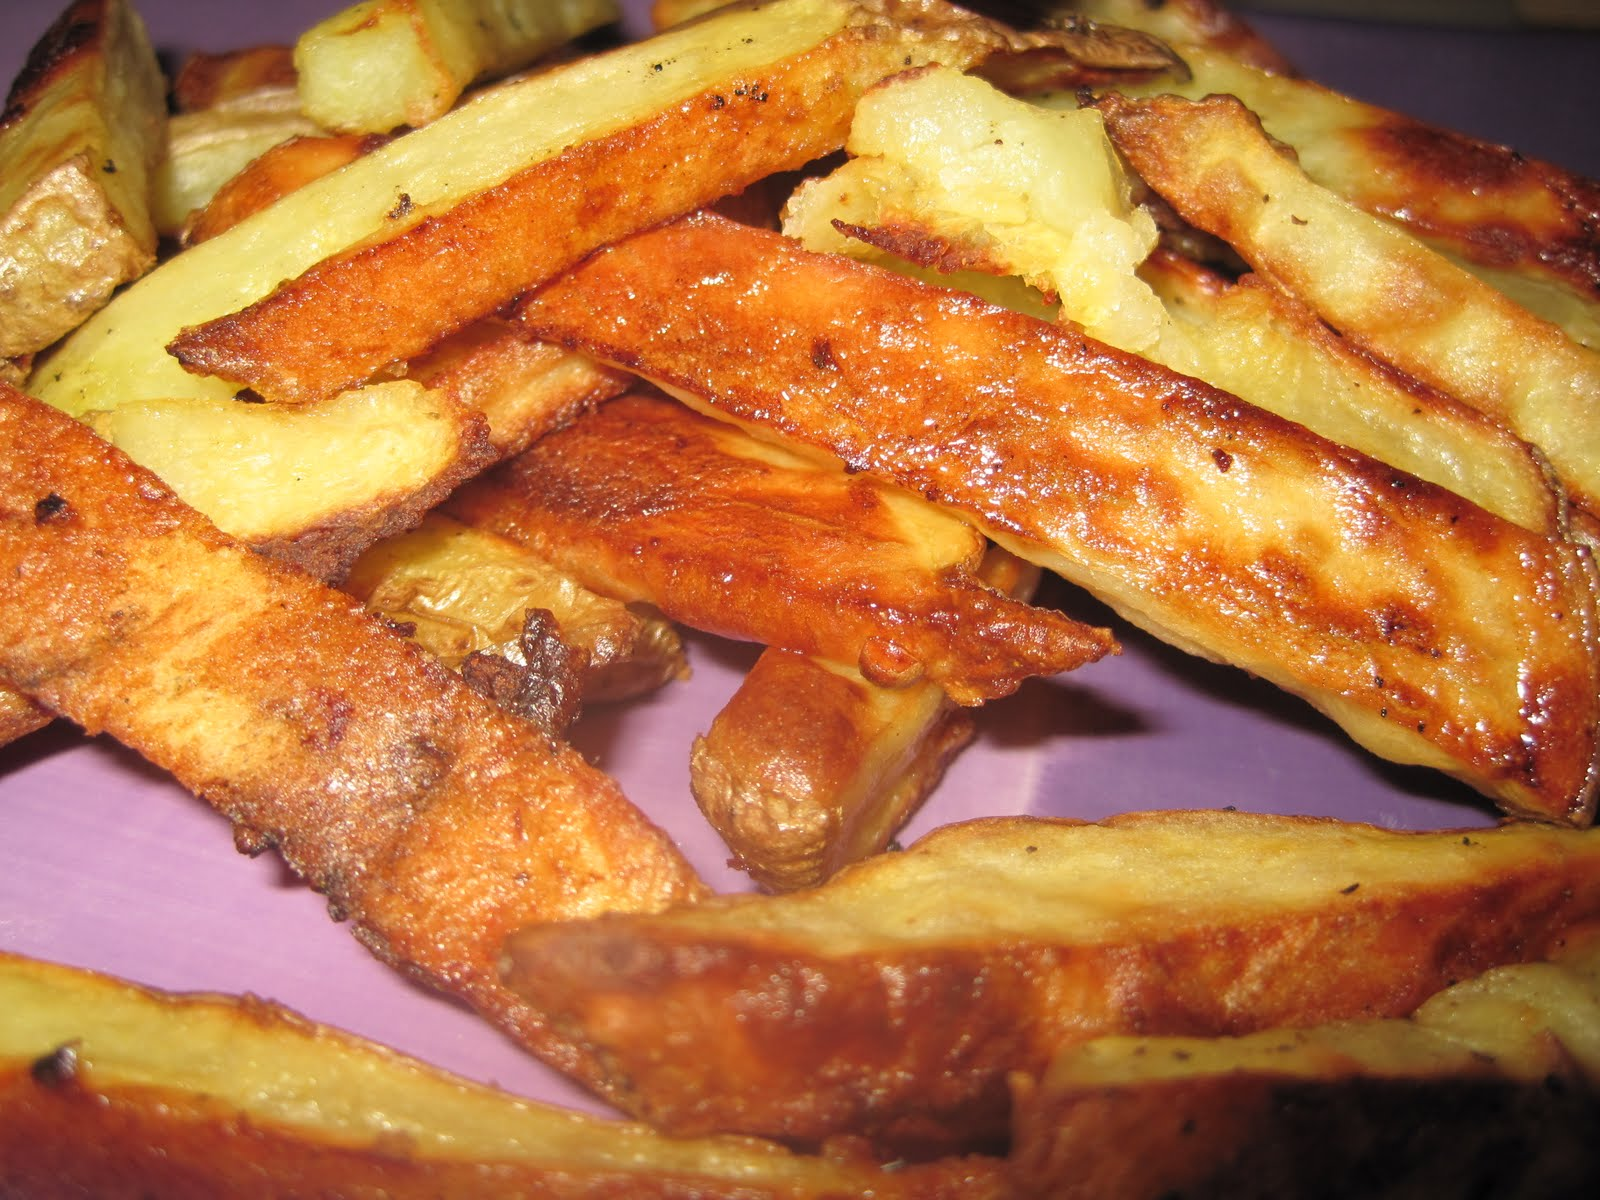 Heartland Foodie: Baked French Fries with Old Bay Mayo Dipping Sauce